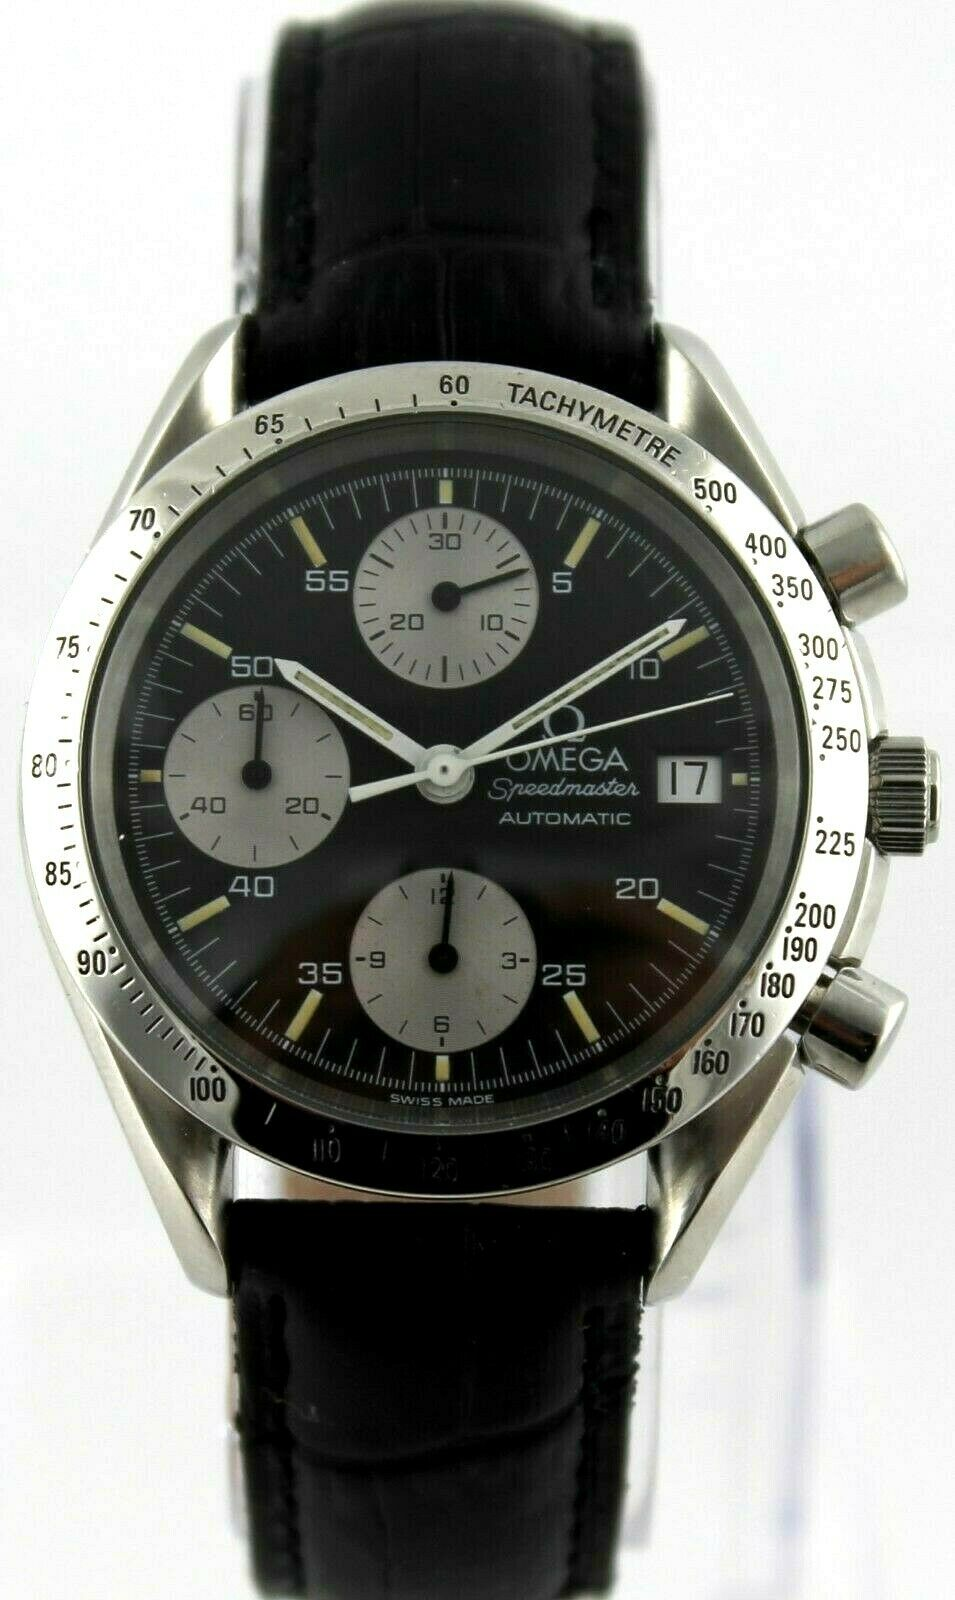 OMEGA MENS SPEEDMASTER 3511.50 AUTOMATIC CHRONOGRAPH PANDA BLACK LEATHER WATCH